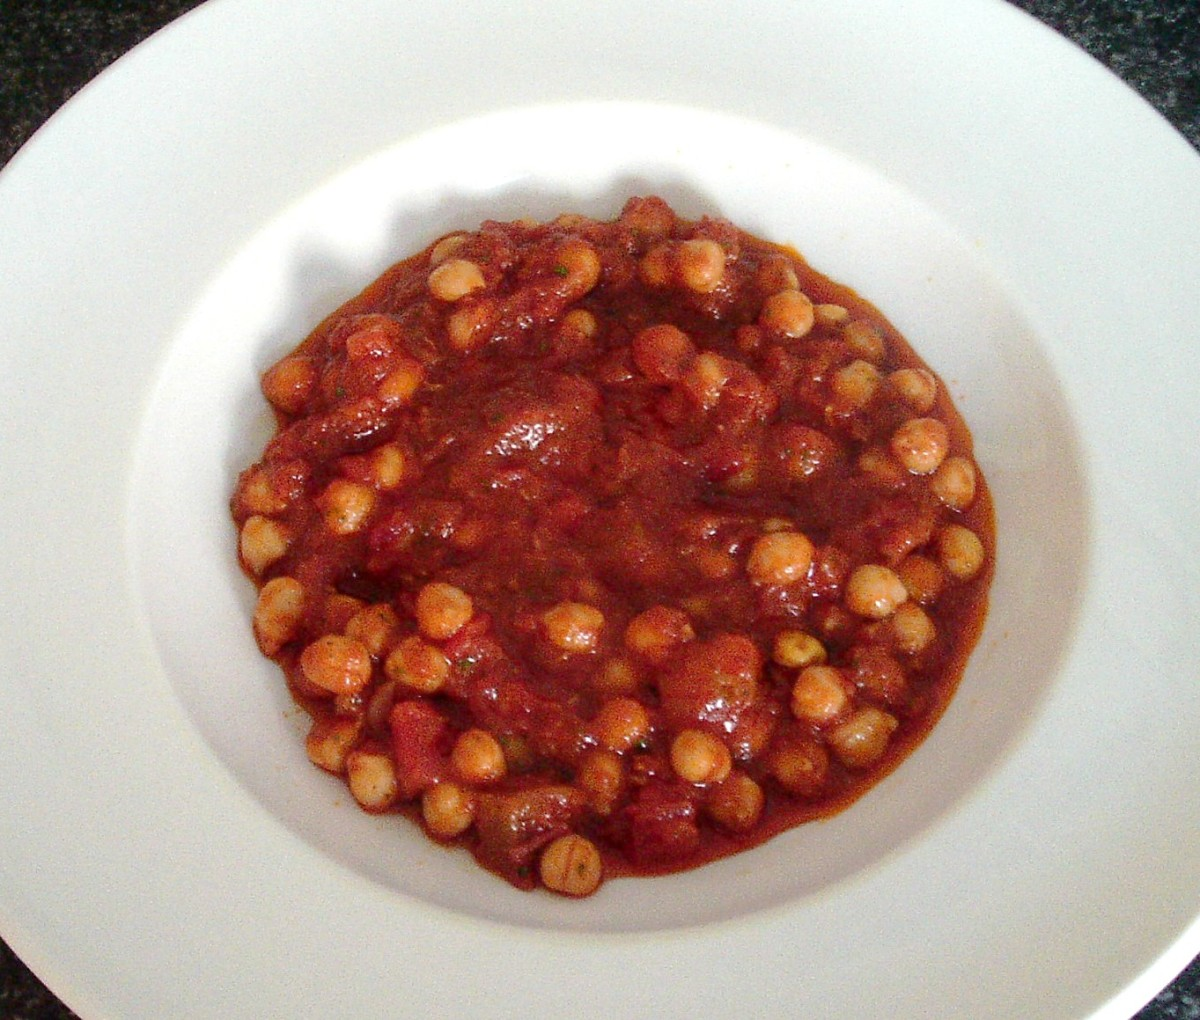 Curried chickpeas are poured in to serving plate